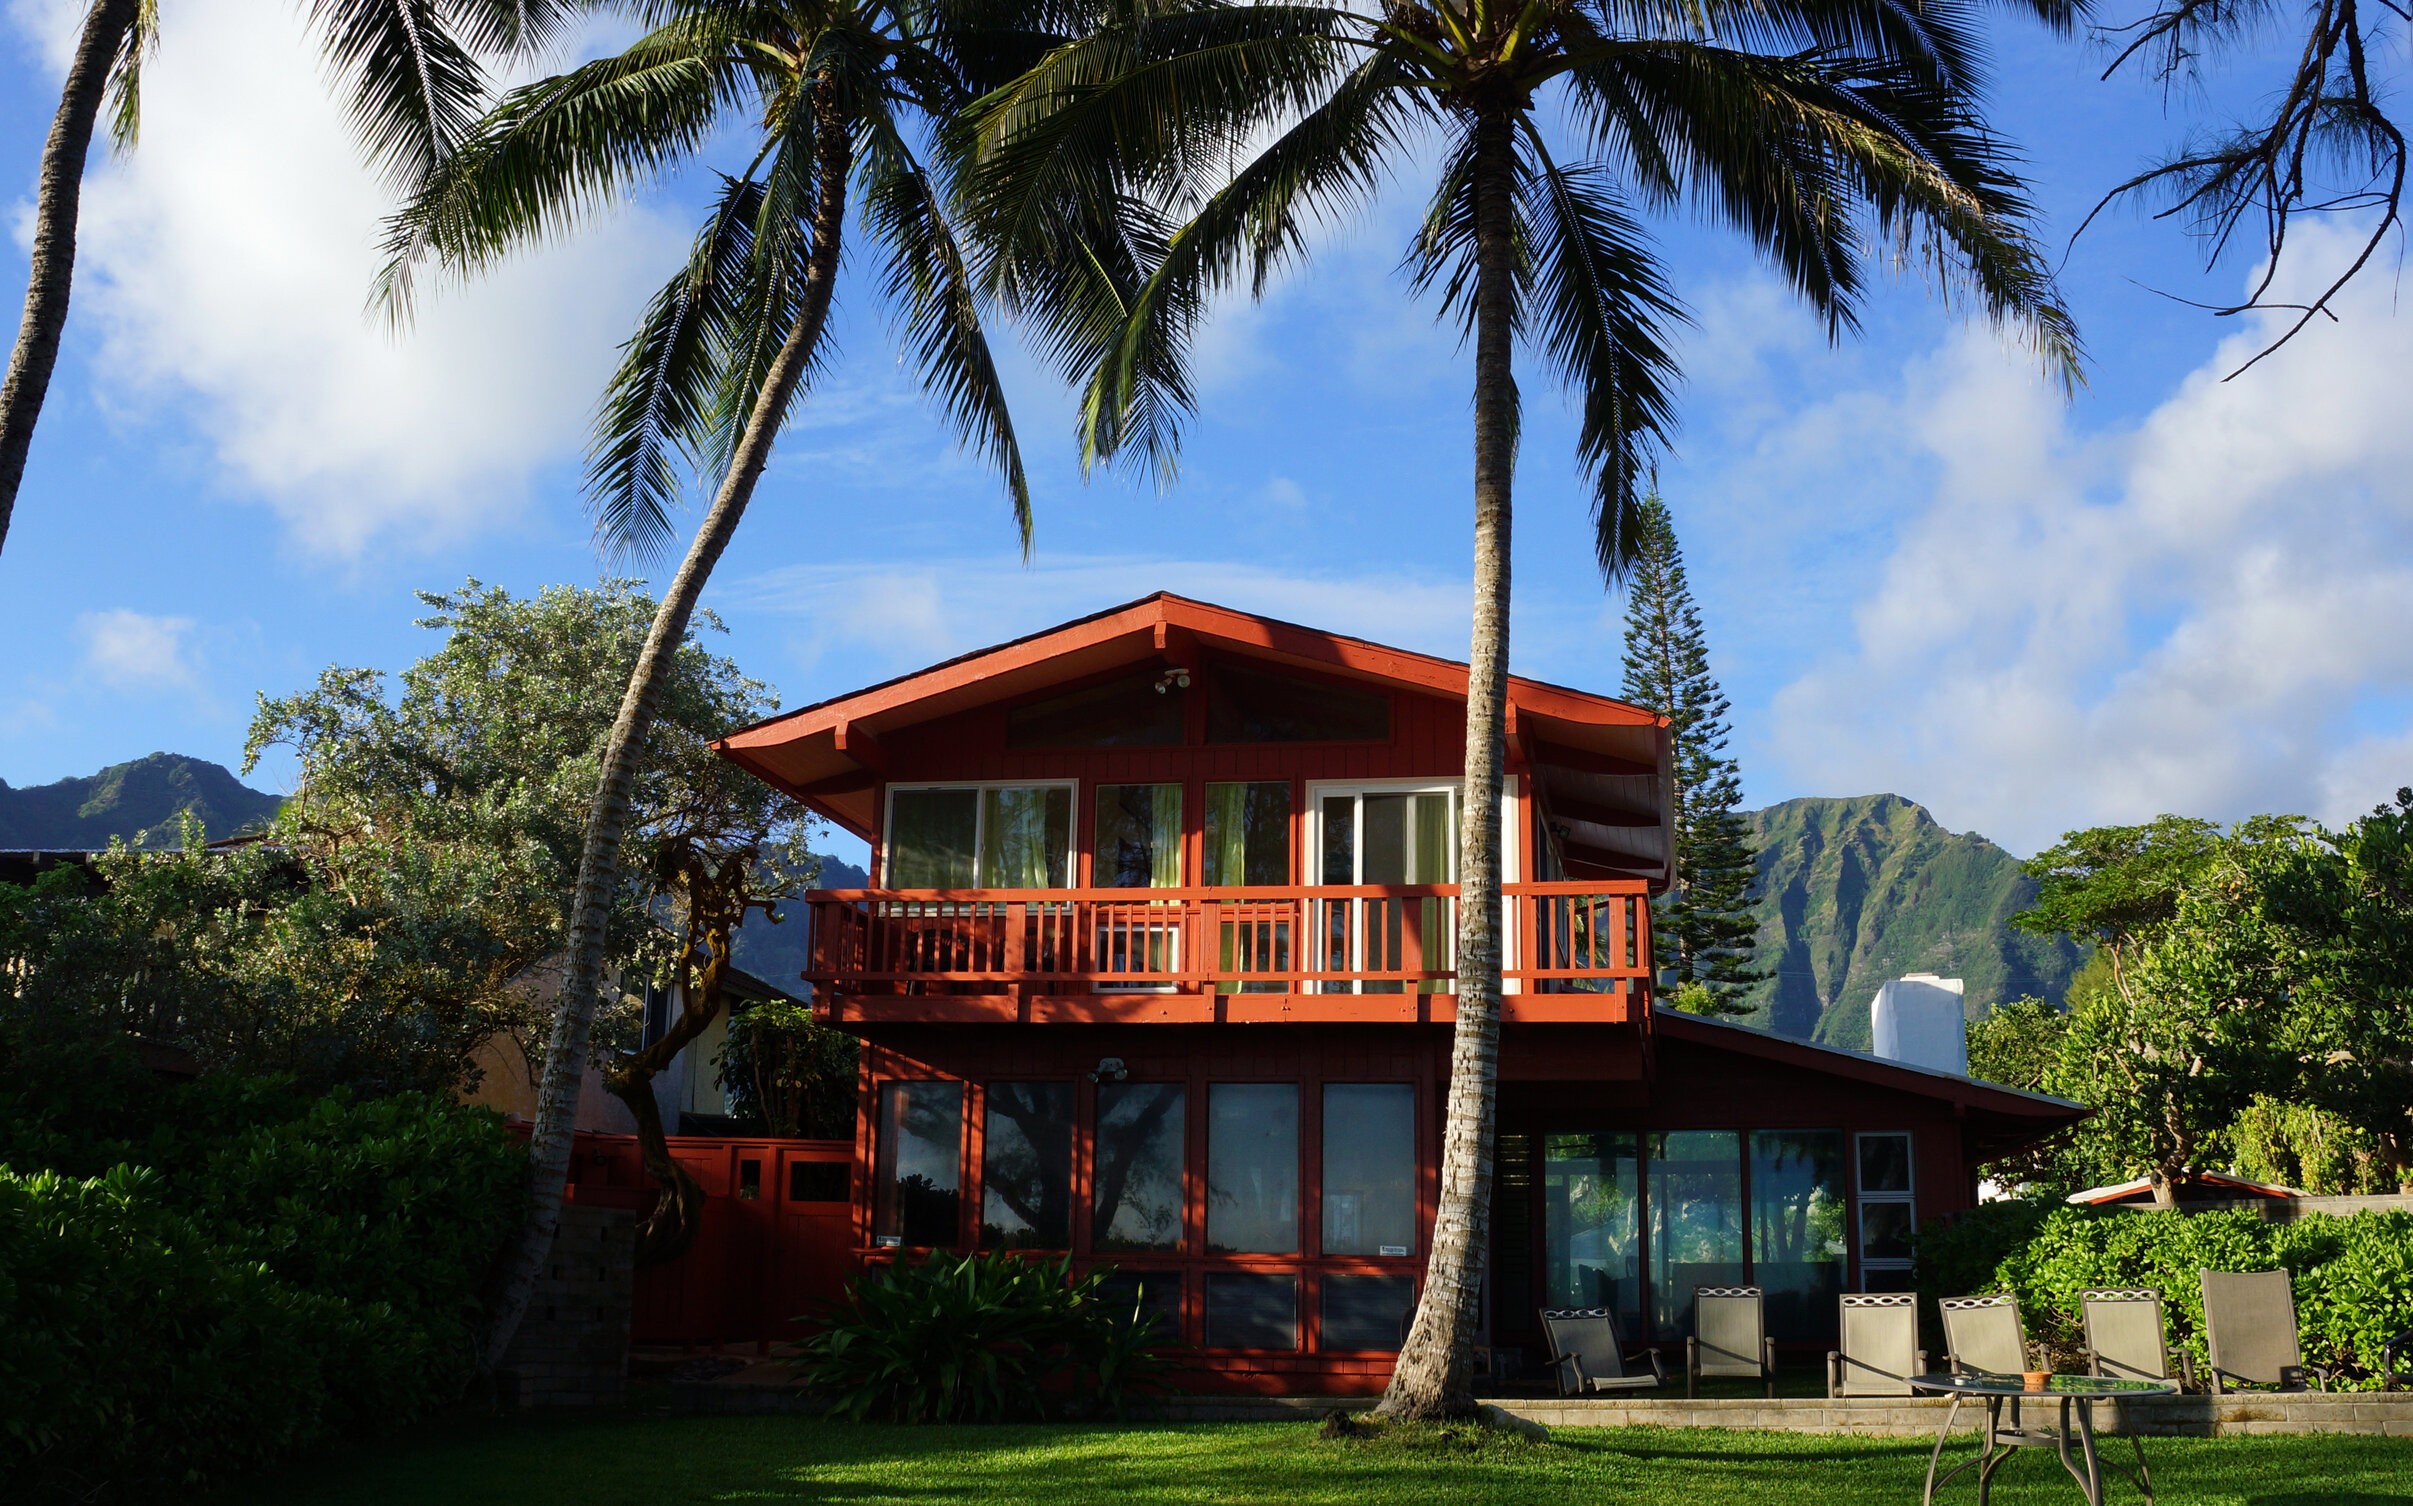 A red house in Hawaii with large palm trees and green yard.